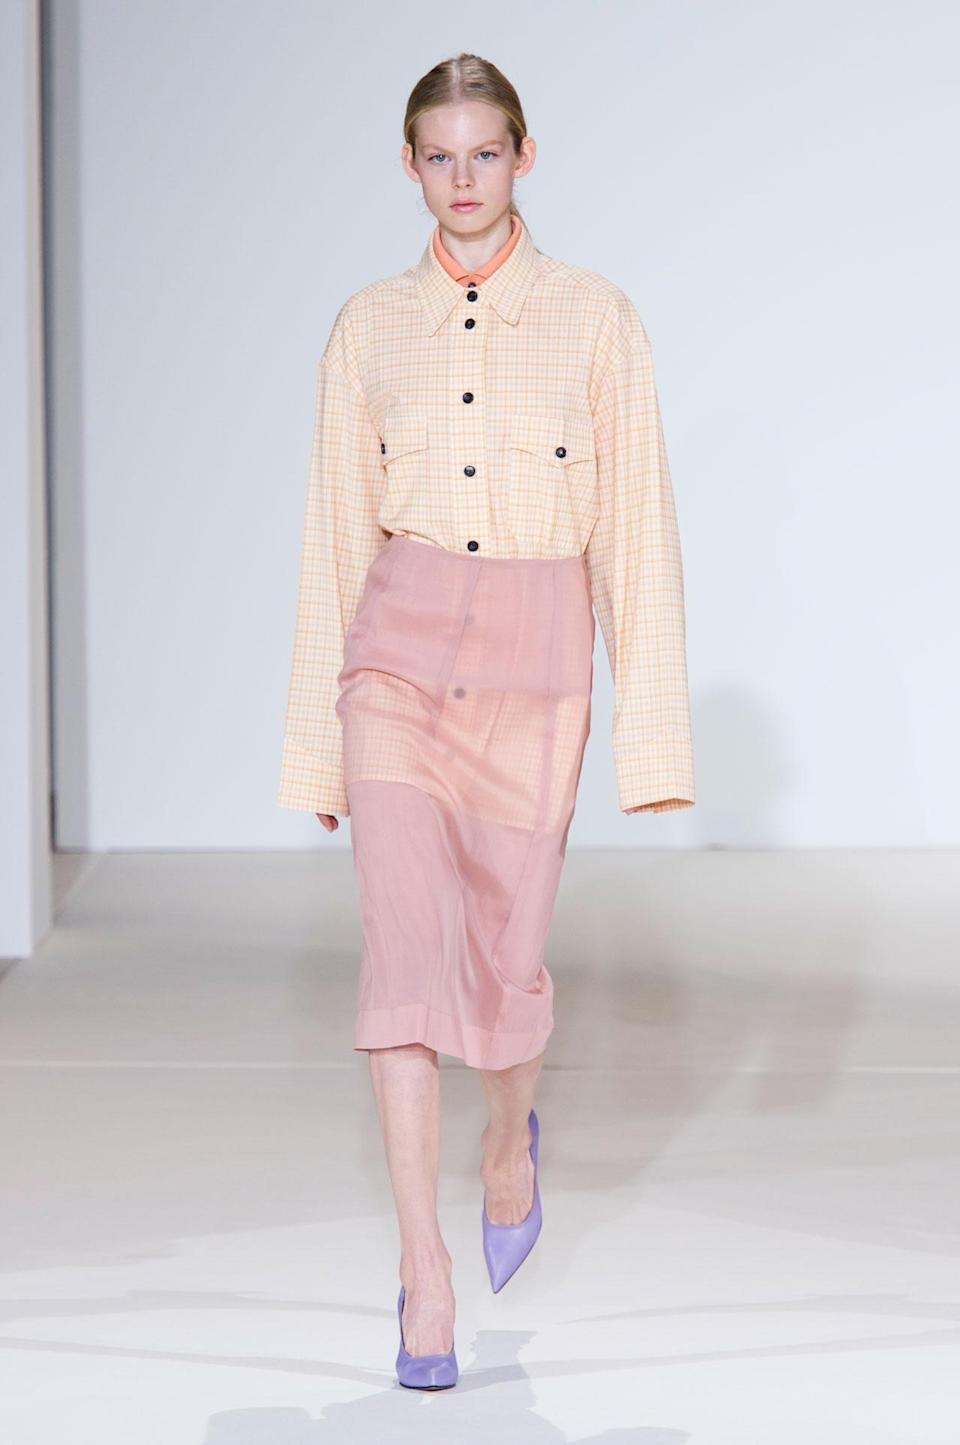 <p>Orange button up shirt and pastel pink skirt from the SS18 Victoria Beckham collection. (Photo: ImaxTree) </p>